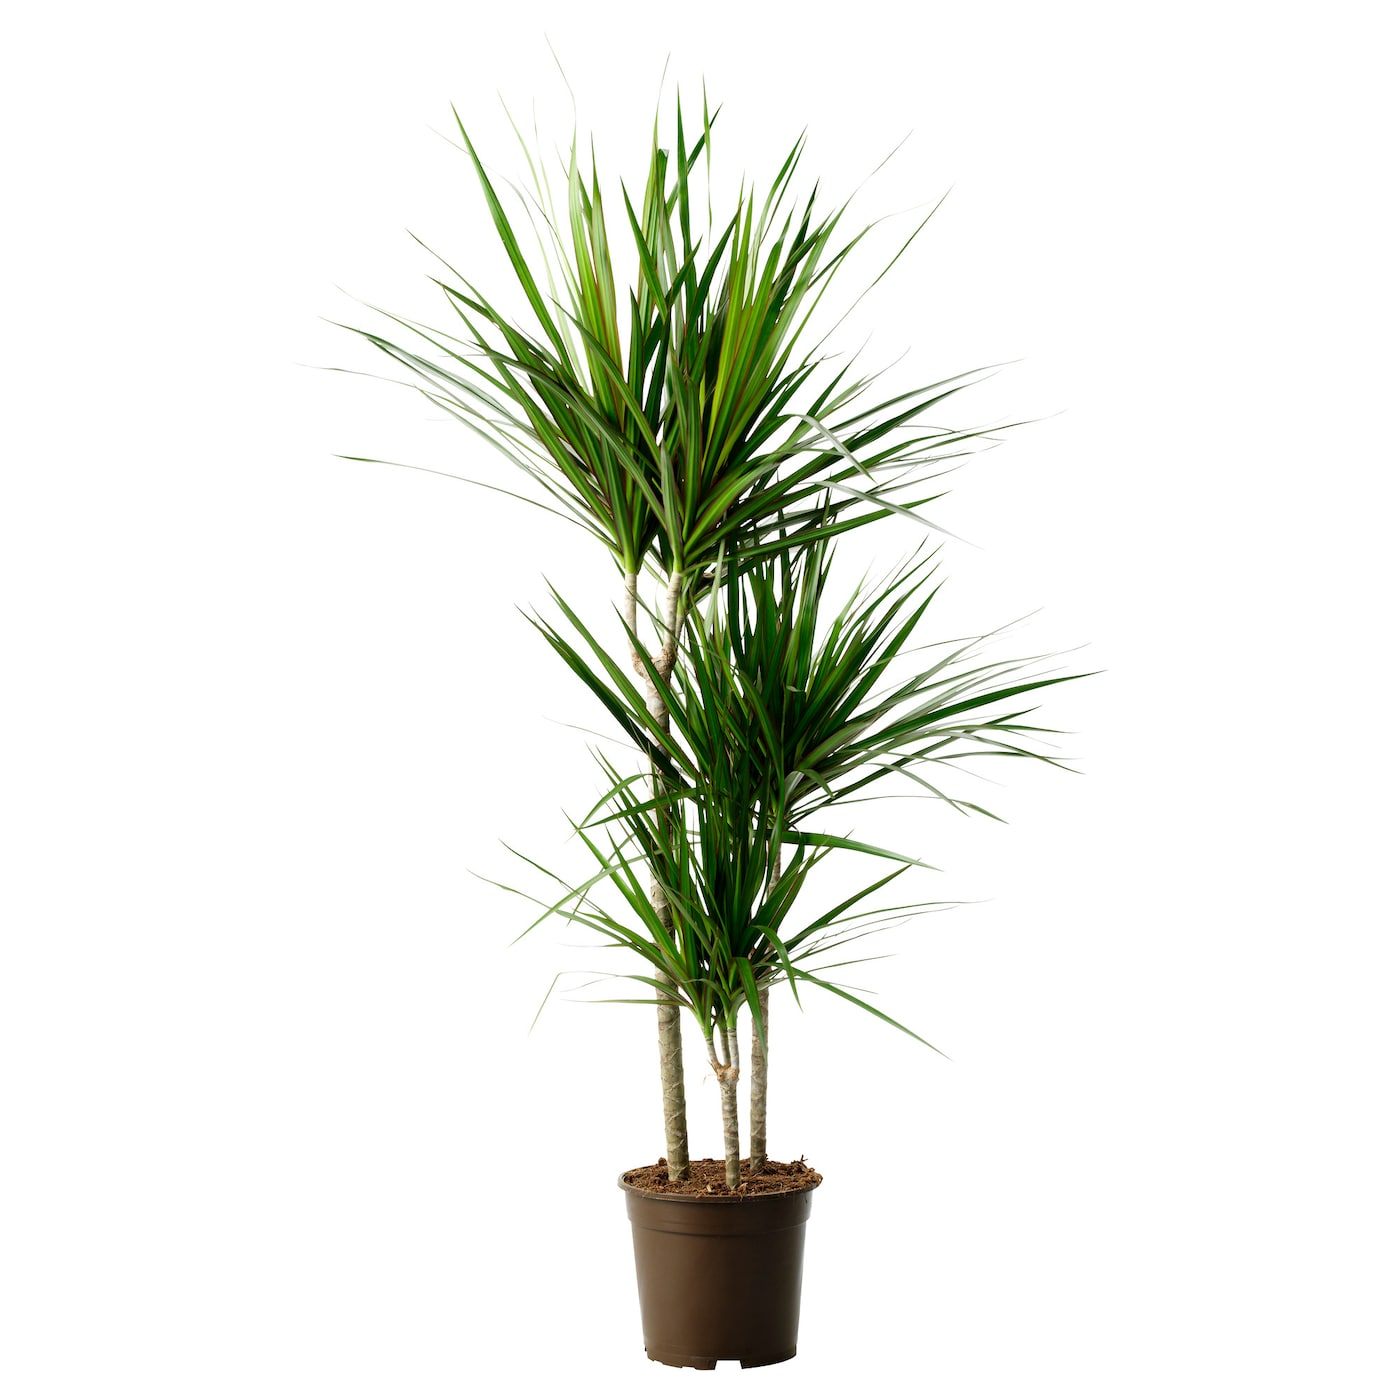 Dracaena marginata potted plant dragon tree 3 stem 21 cm for Dracaena marginata